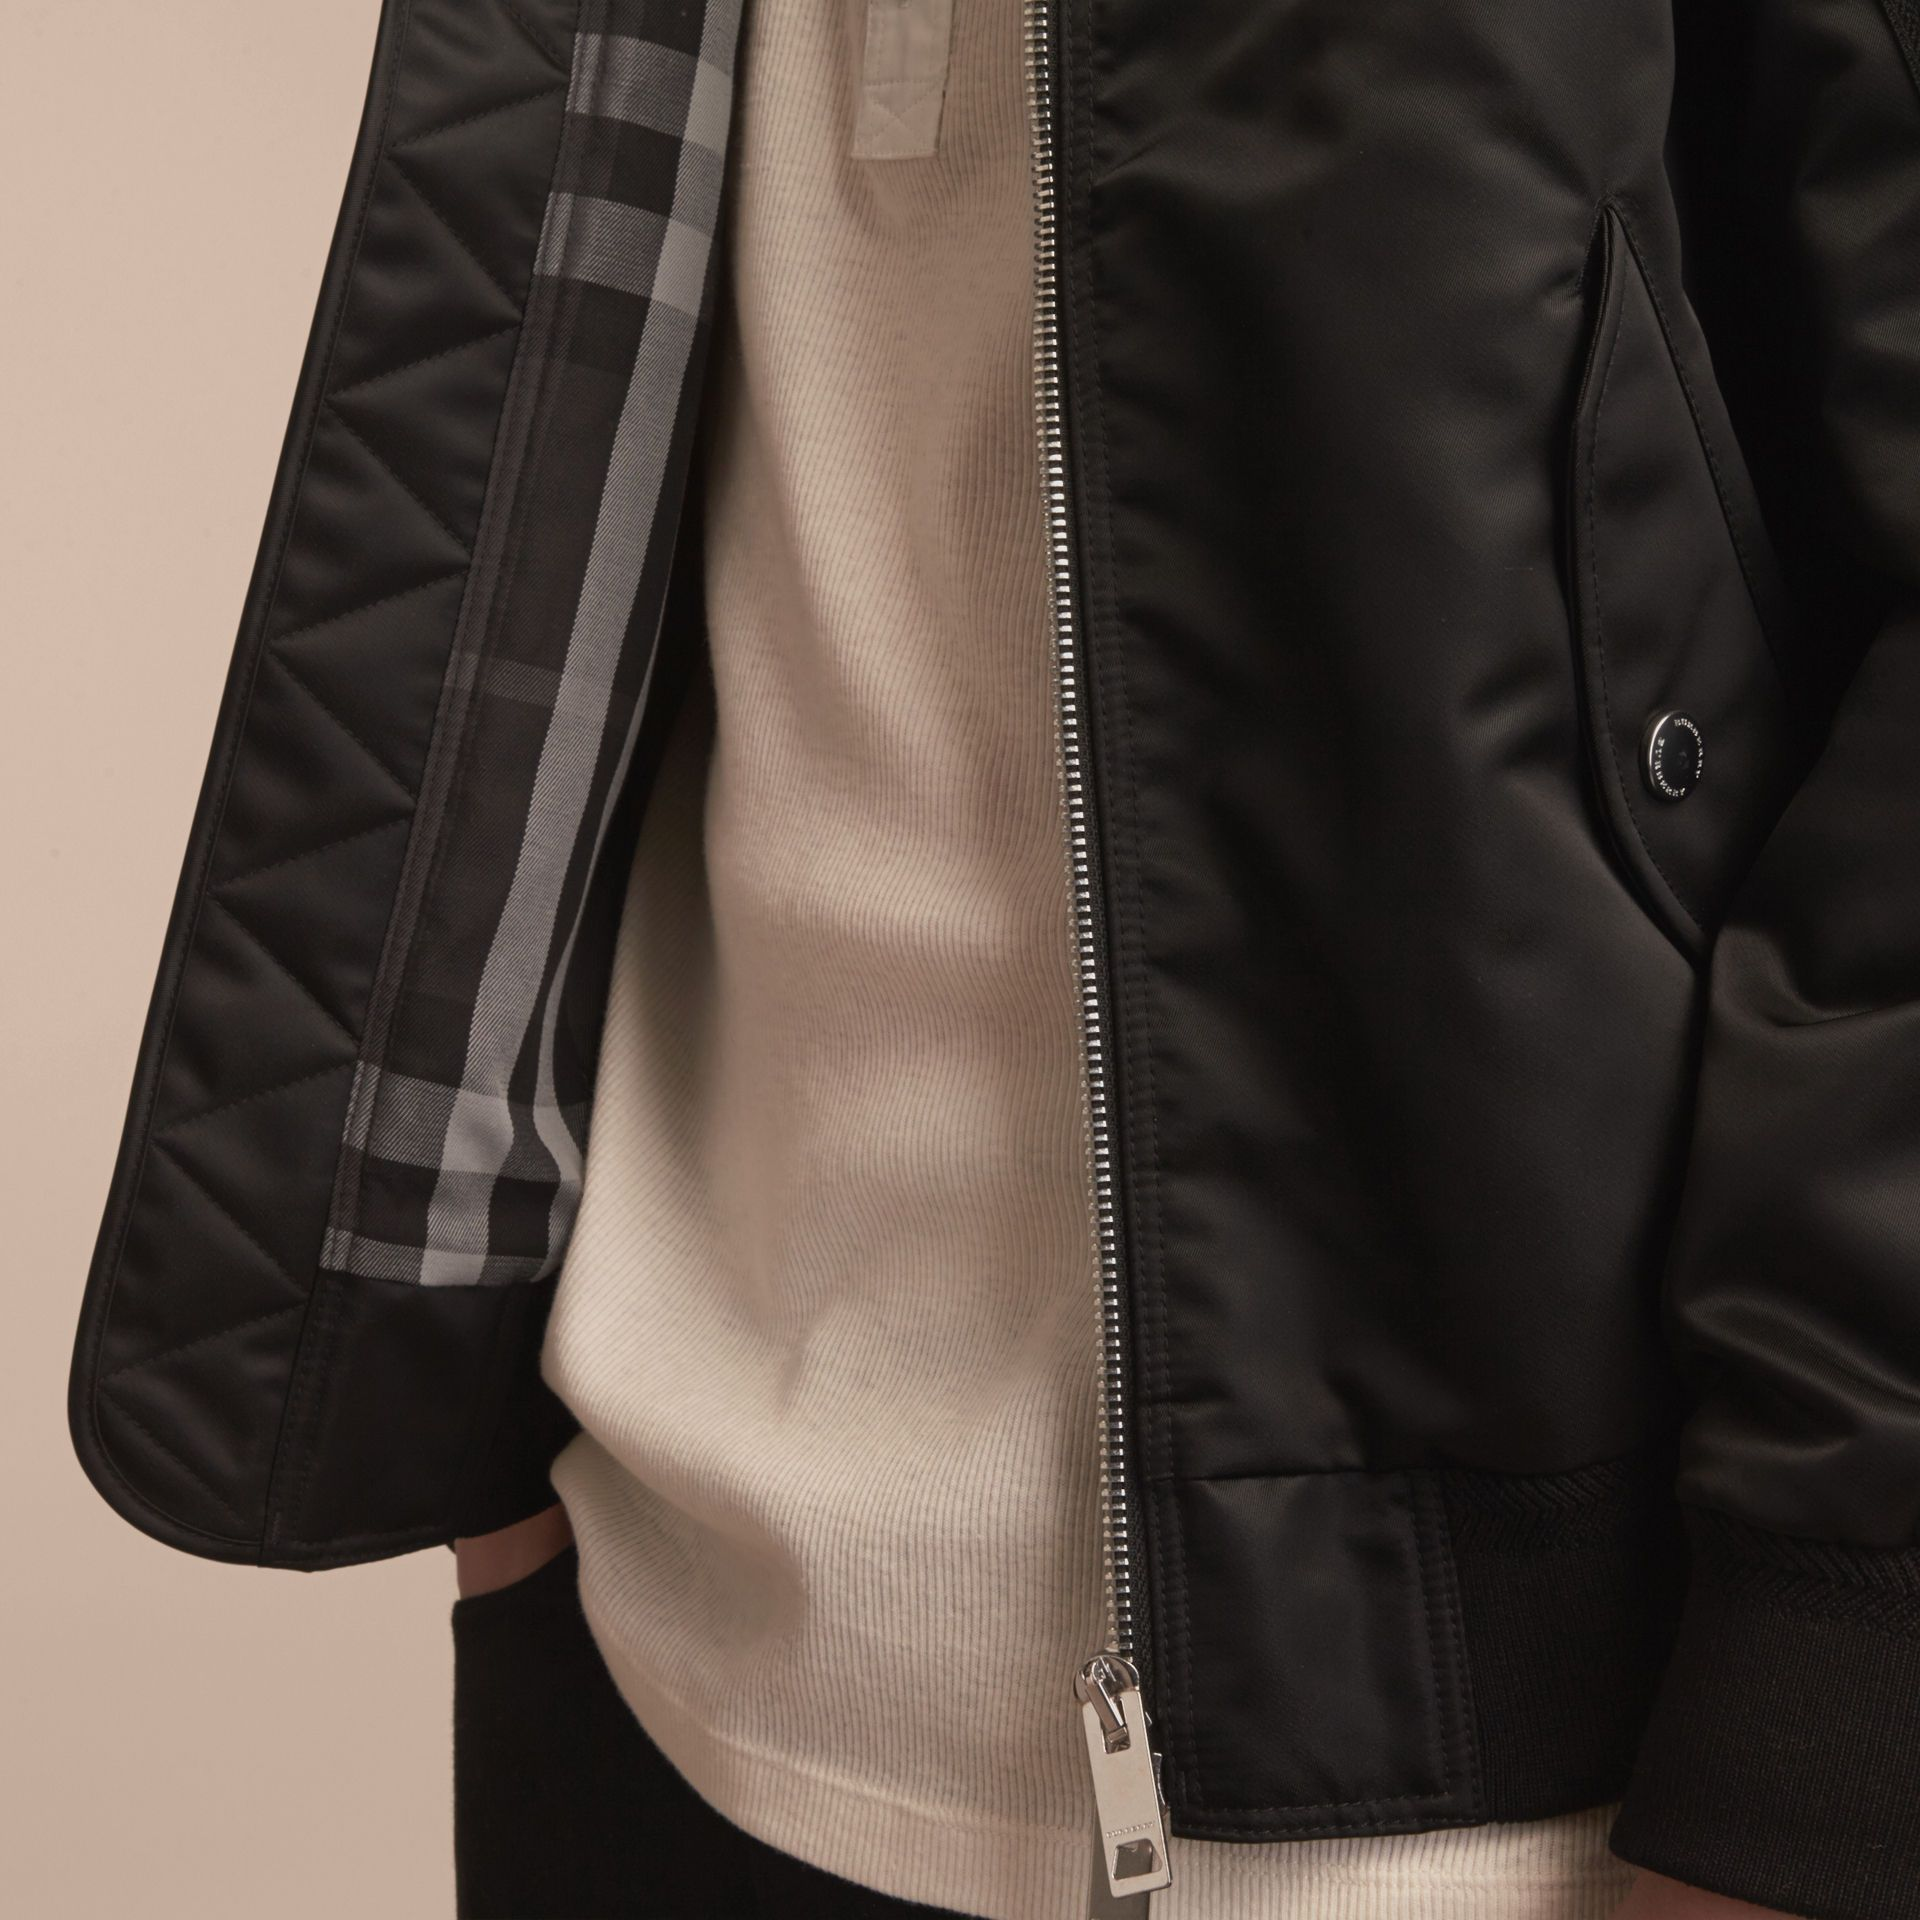 A Burberry Bomber Jacket With A Lustrous Technical Outer The Soft Laid Back Shape Is Finished With Knitted Trims And The Z Mens Jackets Flying Jacket Jackets [ 1920 x 1920 Pixel ]